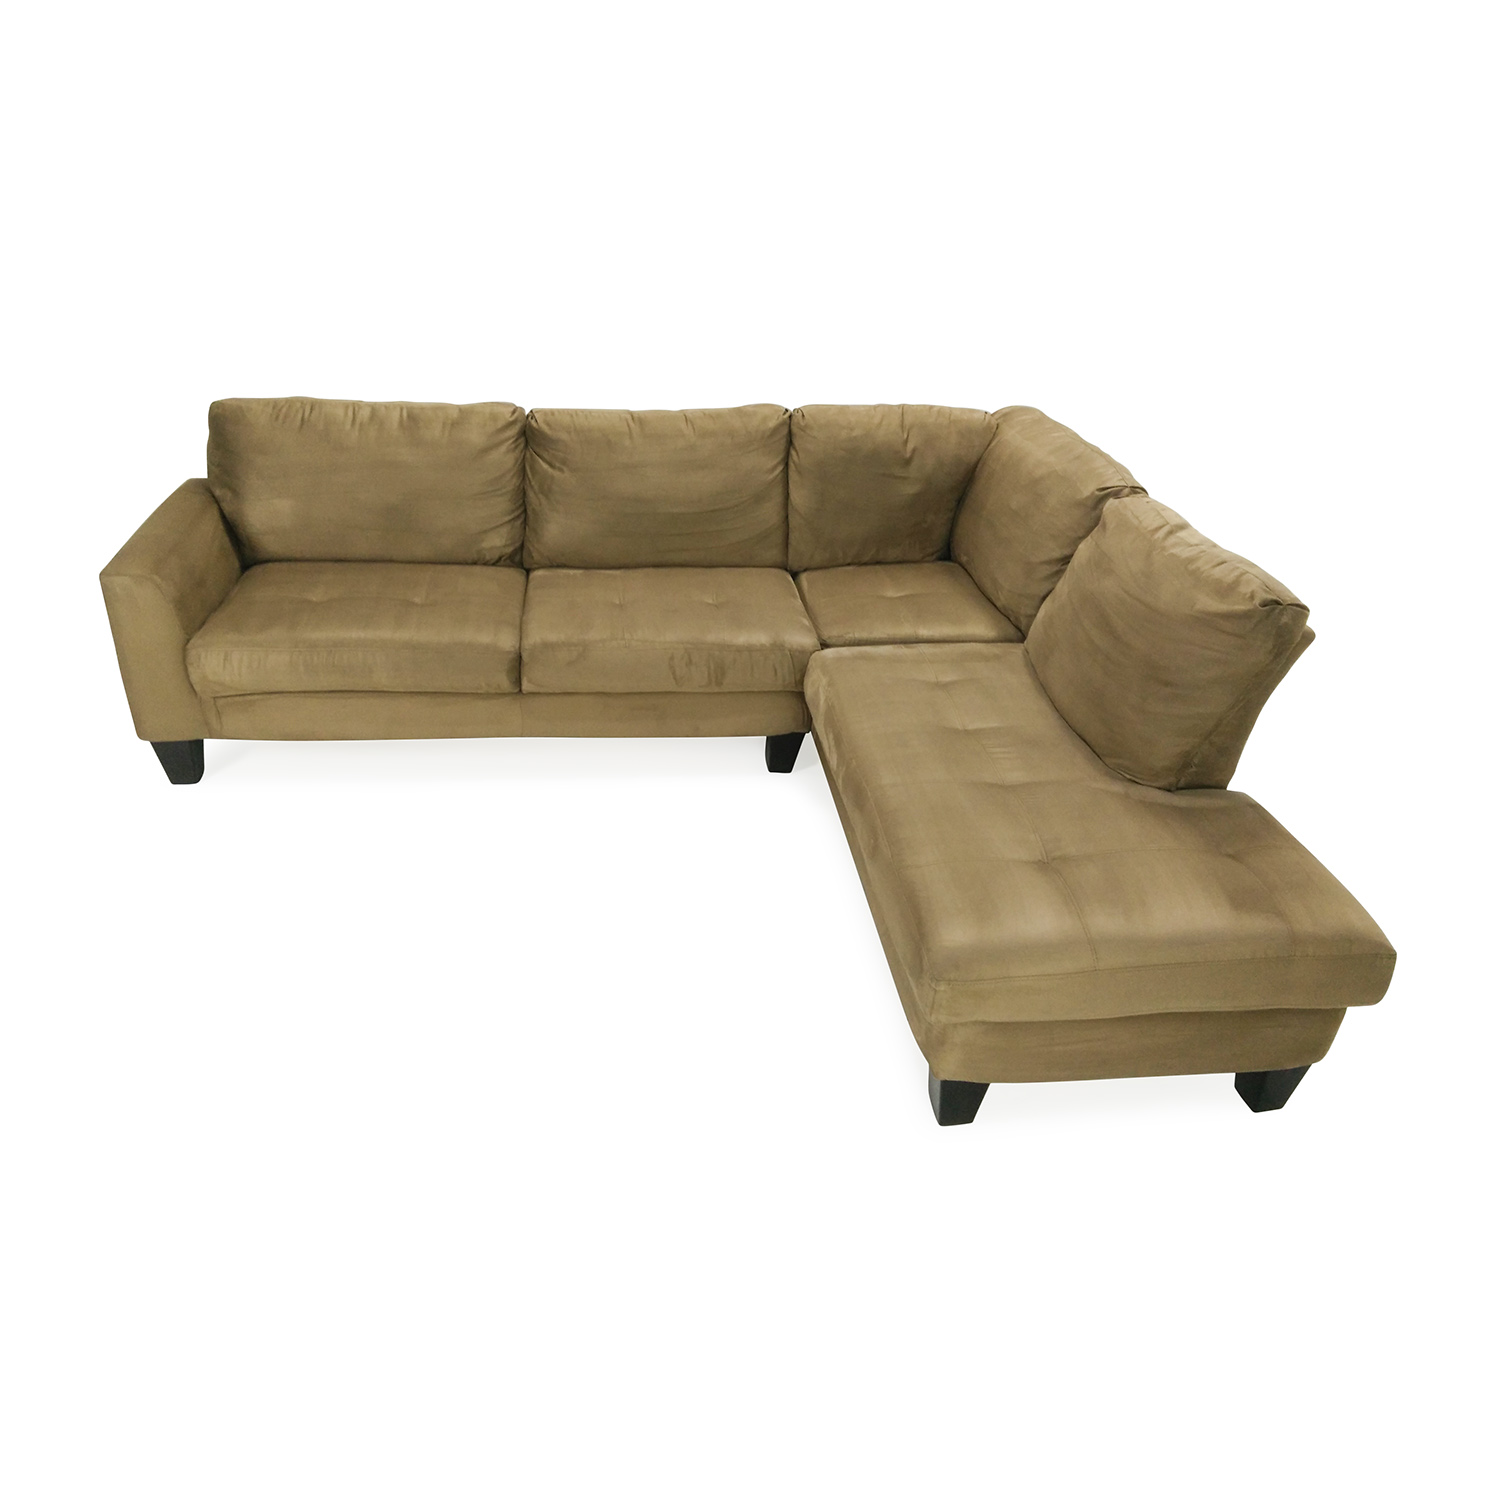 Jennifer Furniture Jennifer Furniture Sectional Sofa coupon